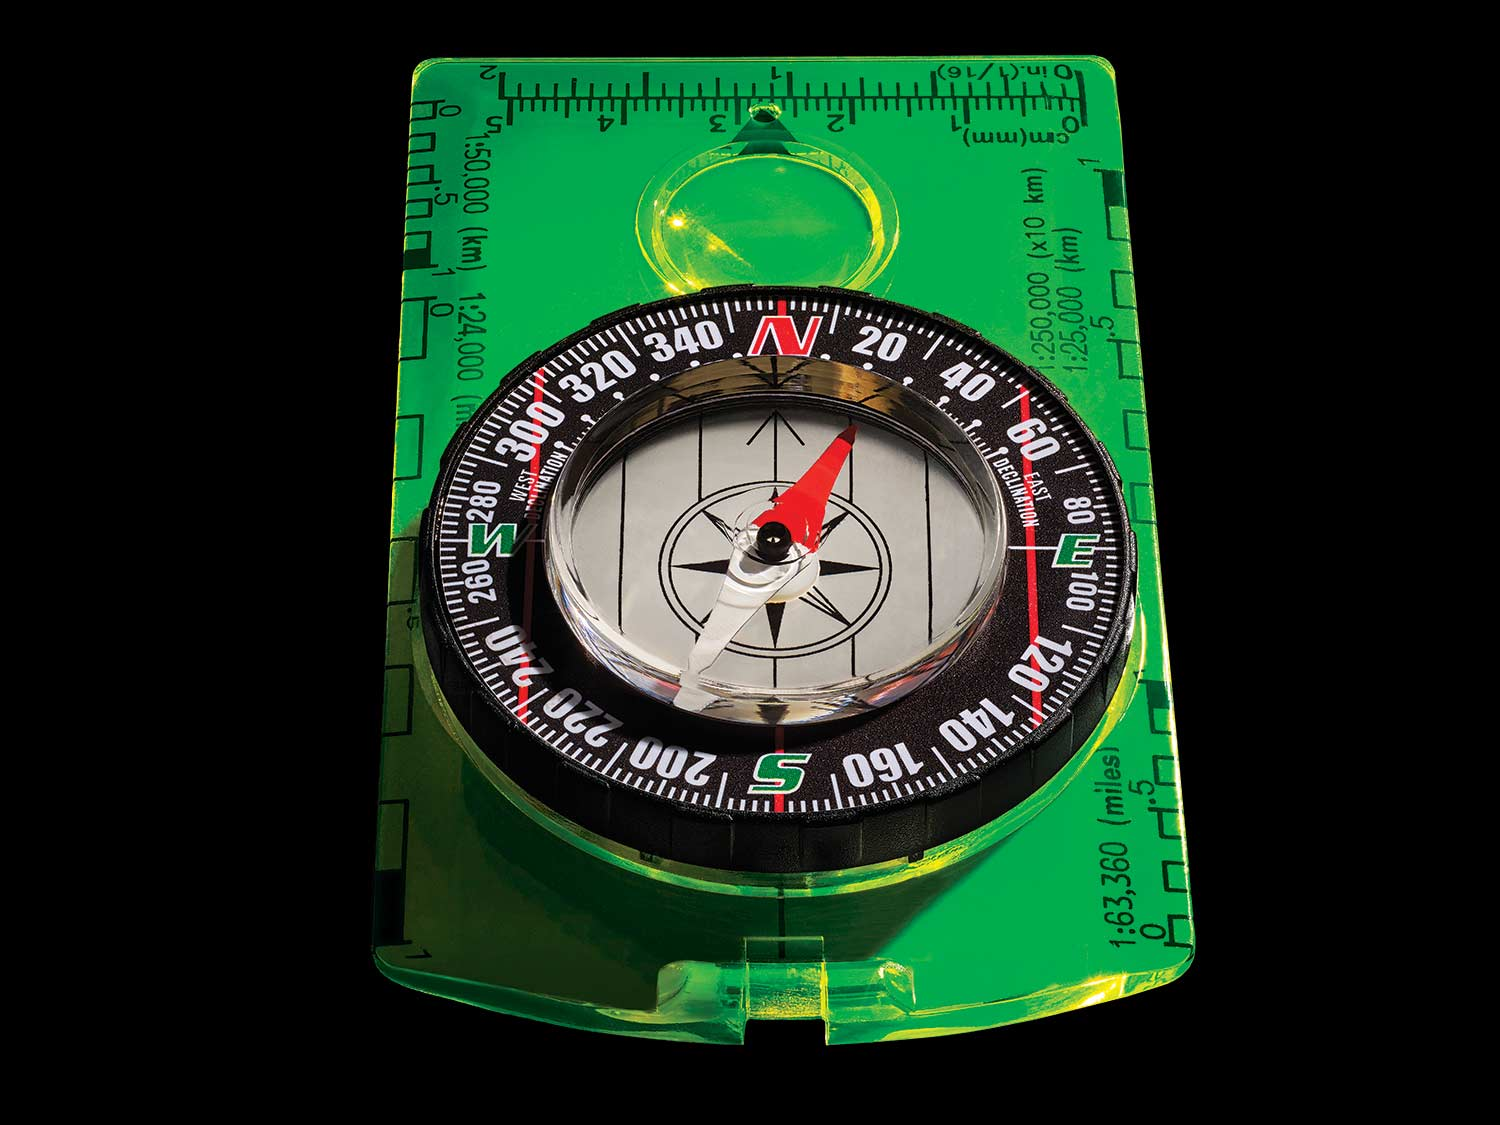 A green compass on a black background.